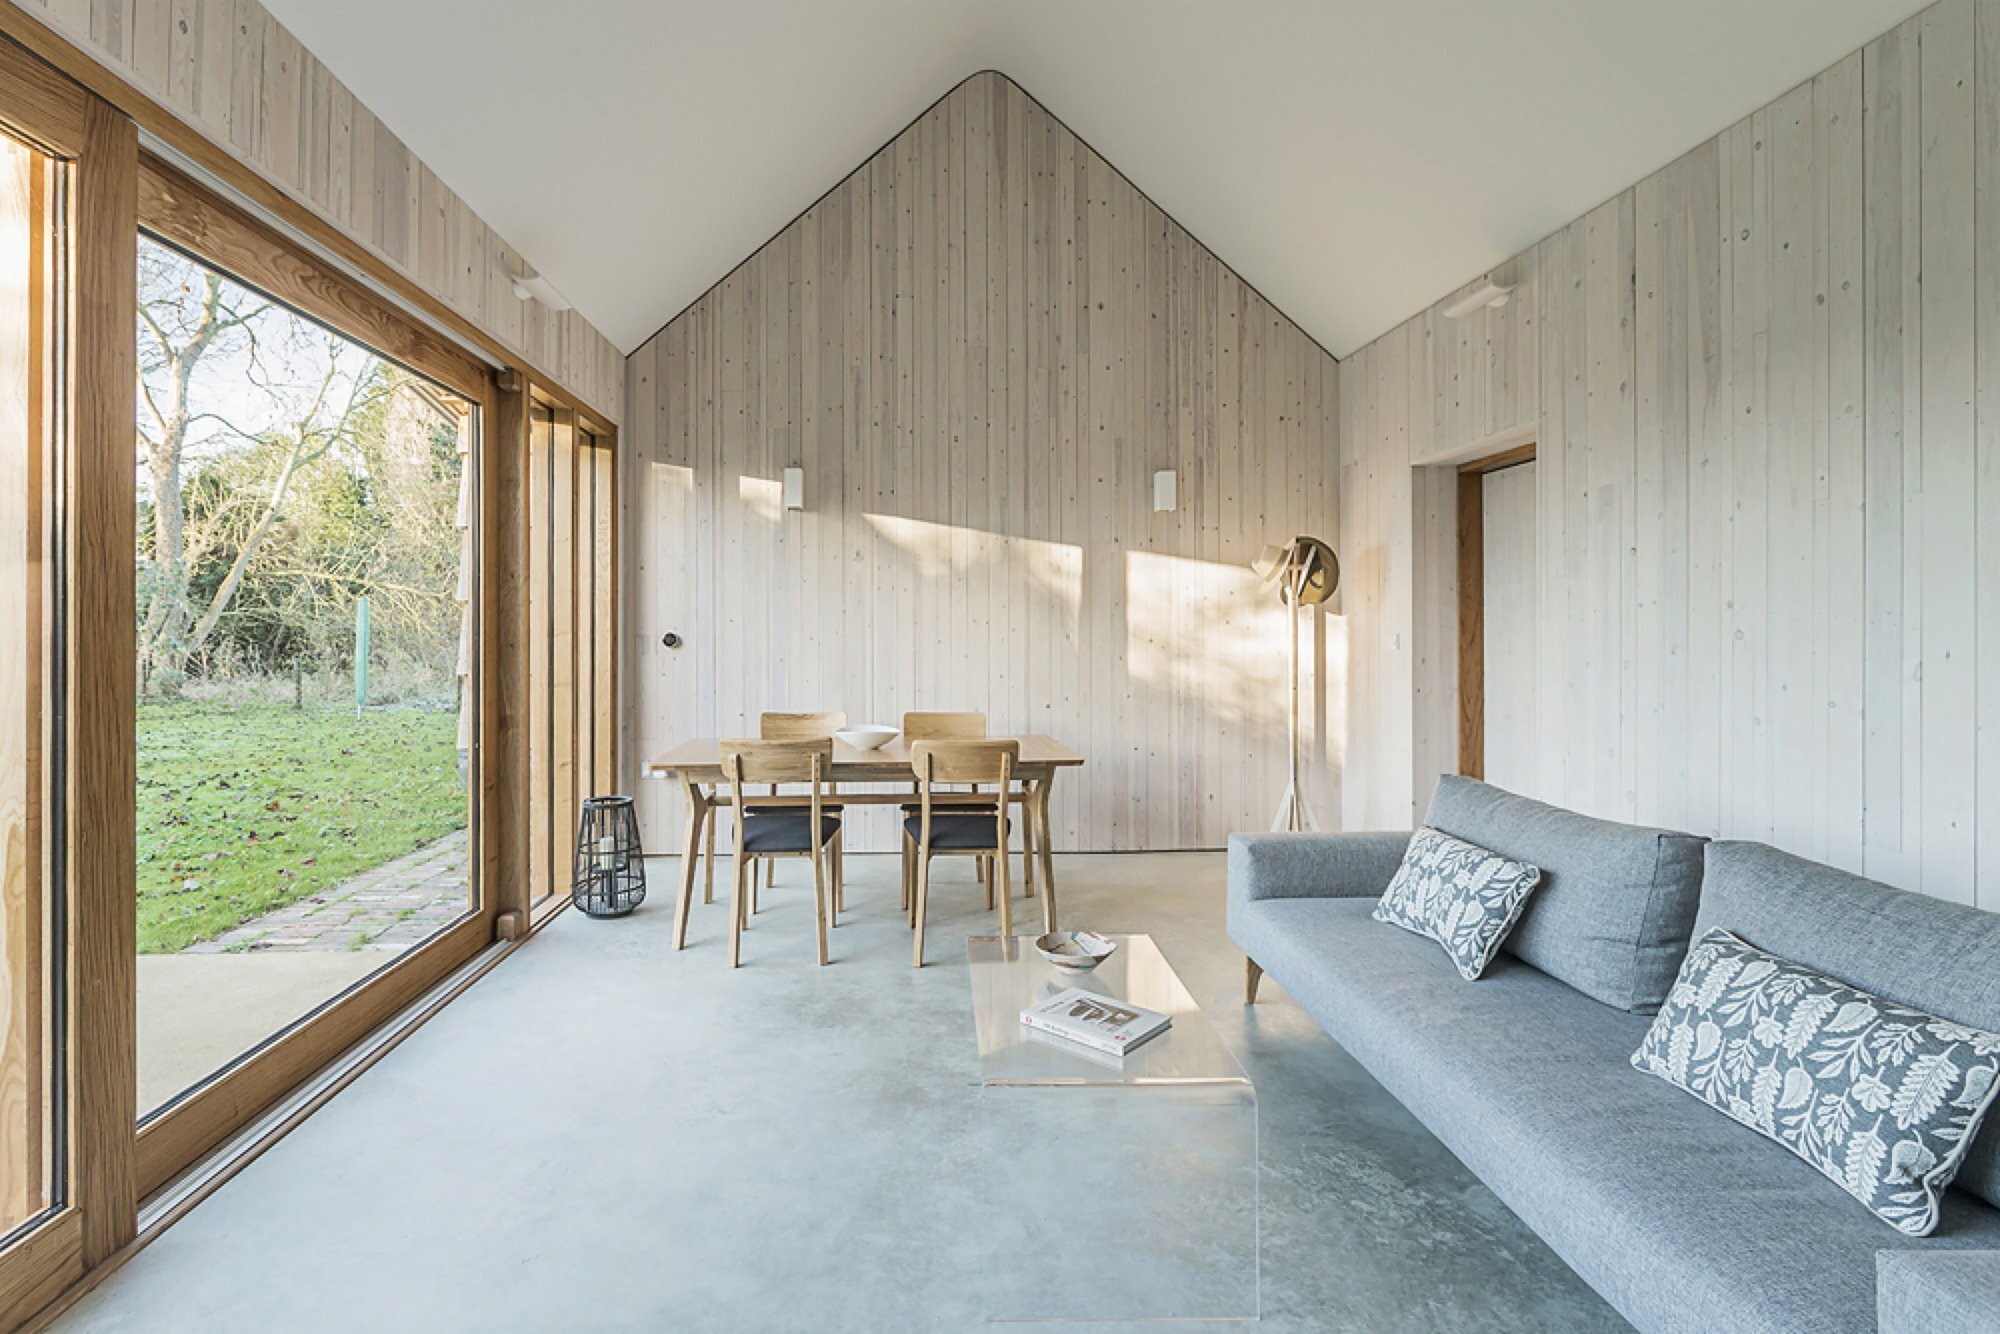 Garden Buildings Warmington - Ashworth Parkes Architects - UK - Living Room 2 - Humble Homes